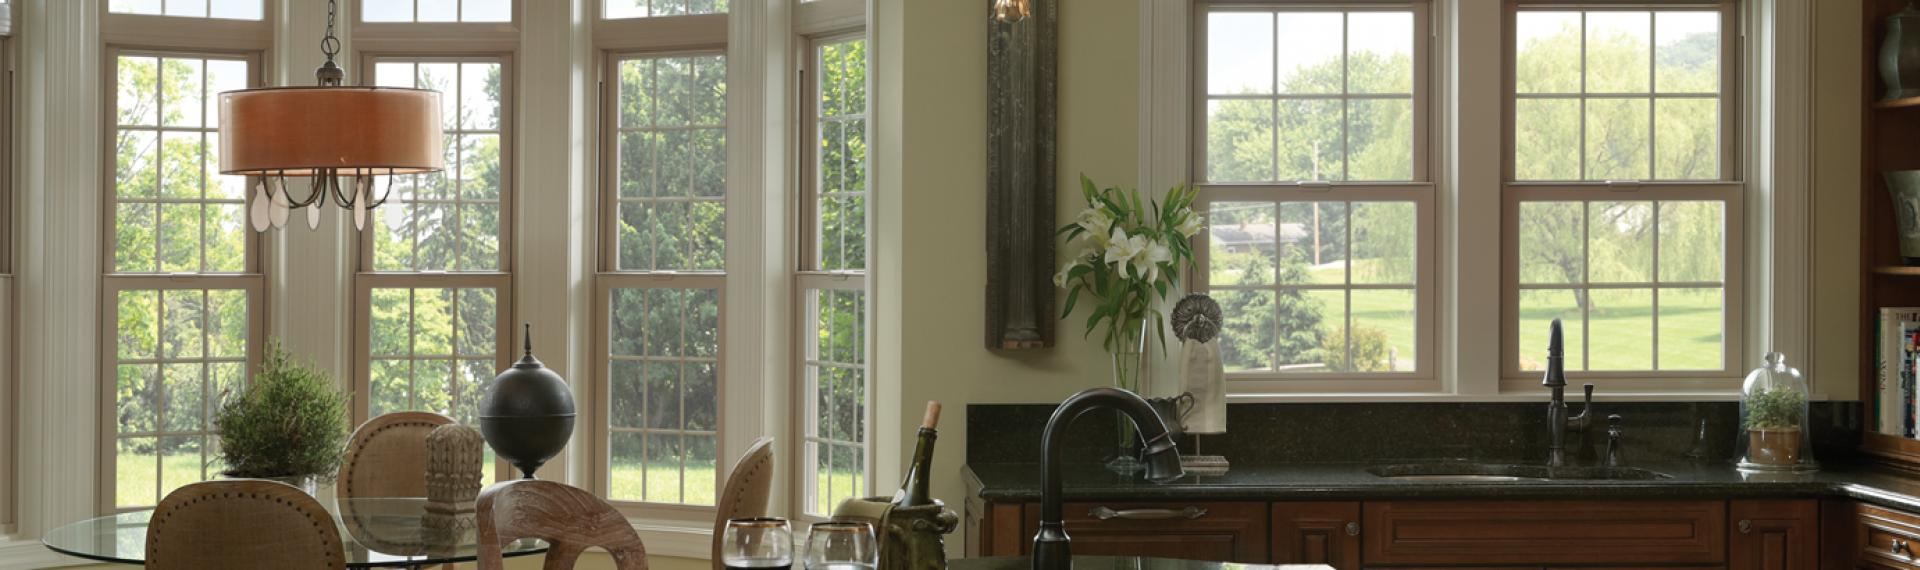 New and Replacement Windows - Single Hung by Milgard